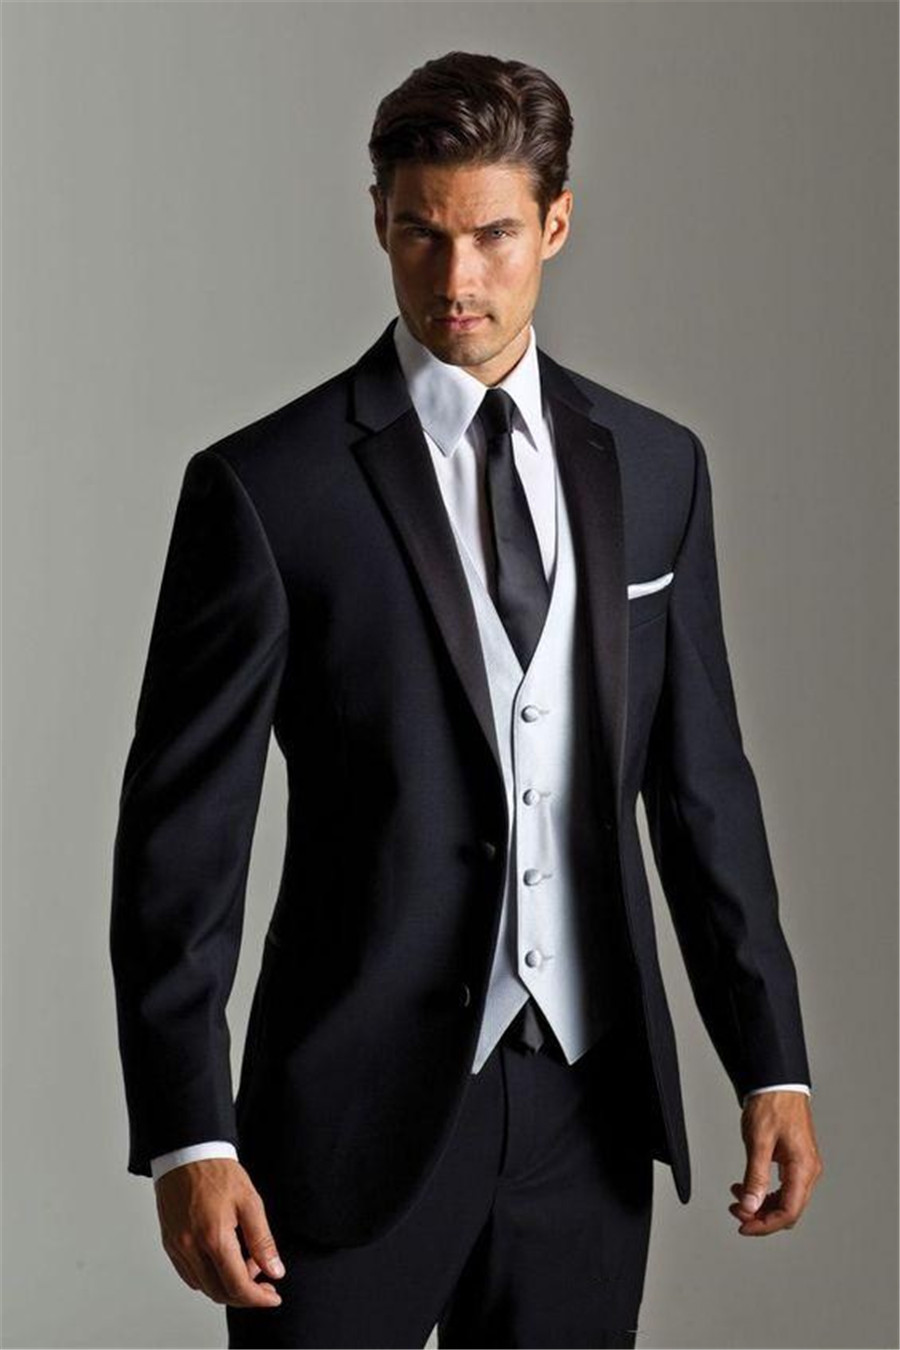 Handsome Navy Blue Custom Mens Wedding Suits Two Buttons Slim Fit Grooms Tuxedo Three Pieces Formal Suit (Jacket+Pants+Vest)